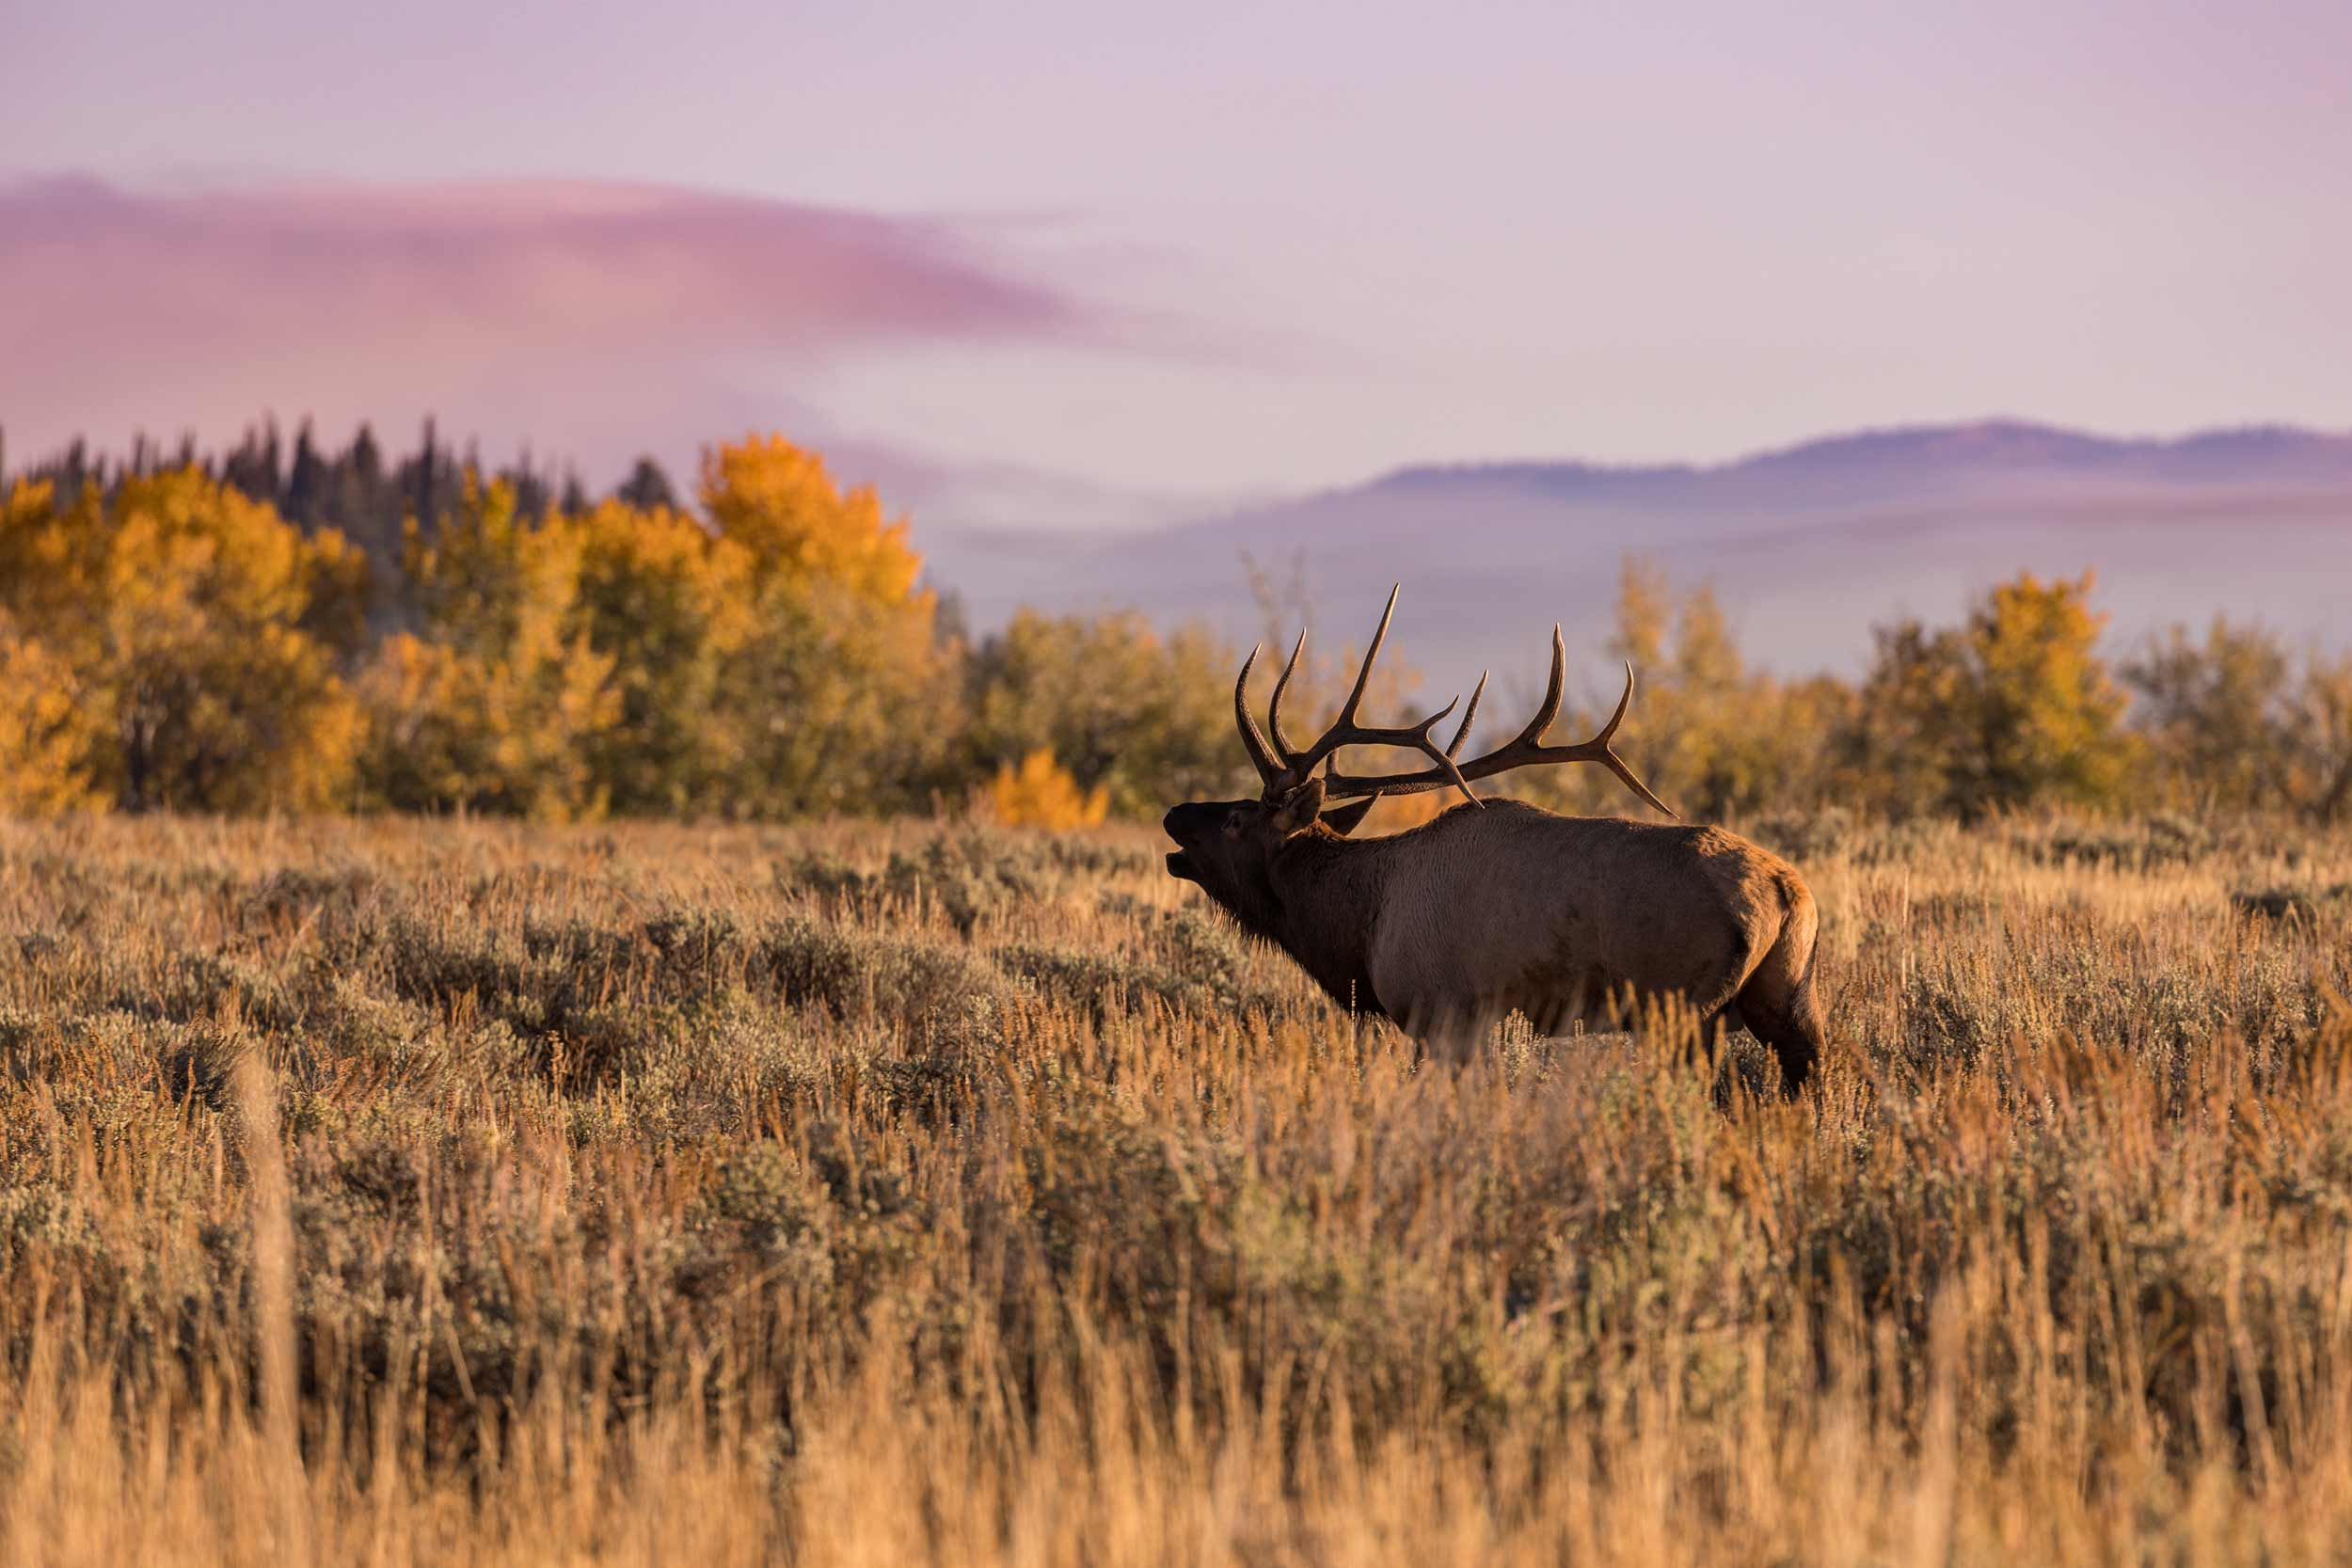 Bull Elk Bugling During Fall Autumn Rut